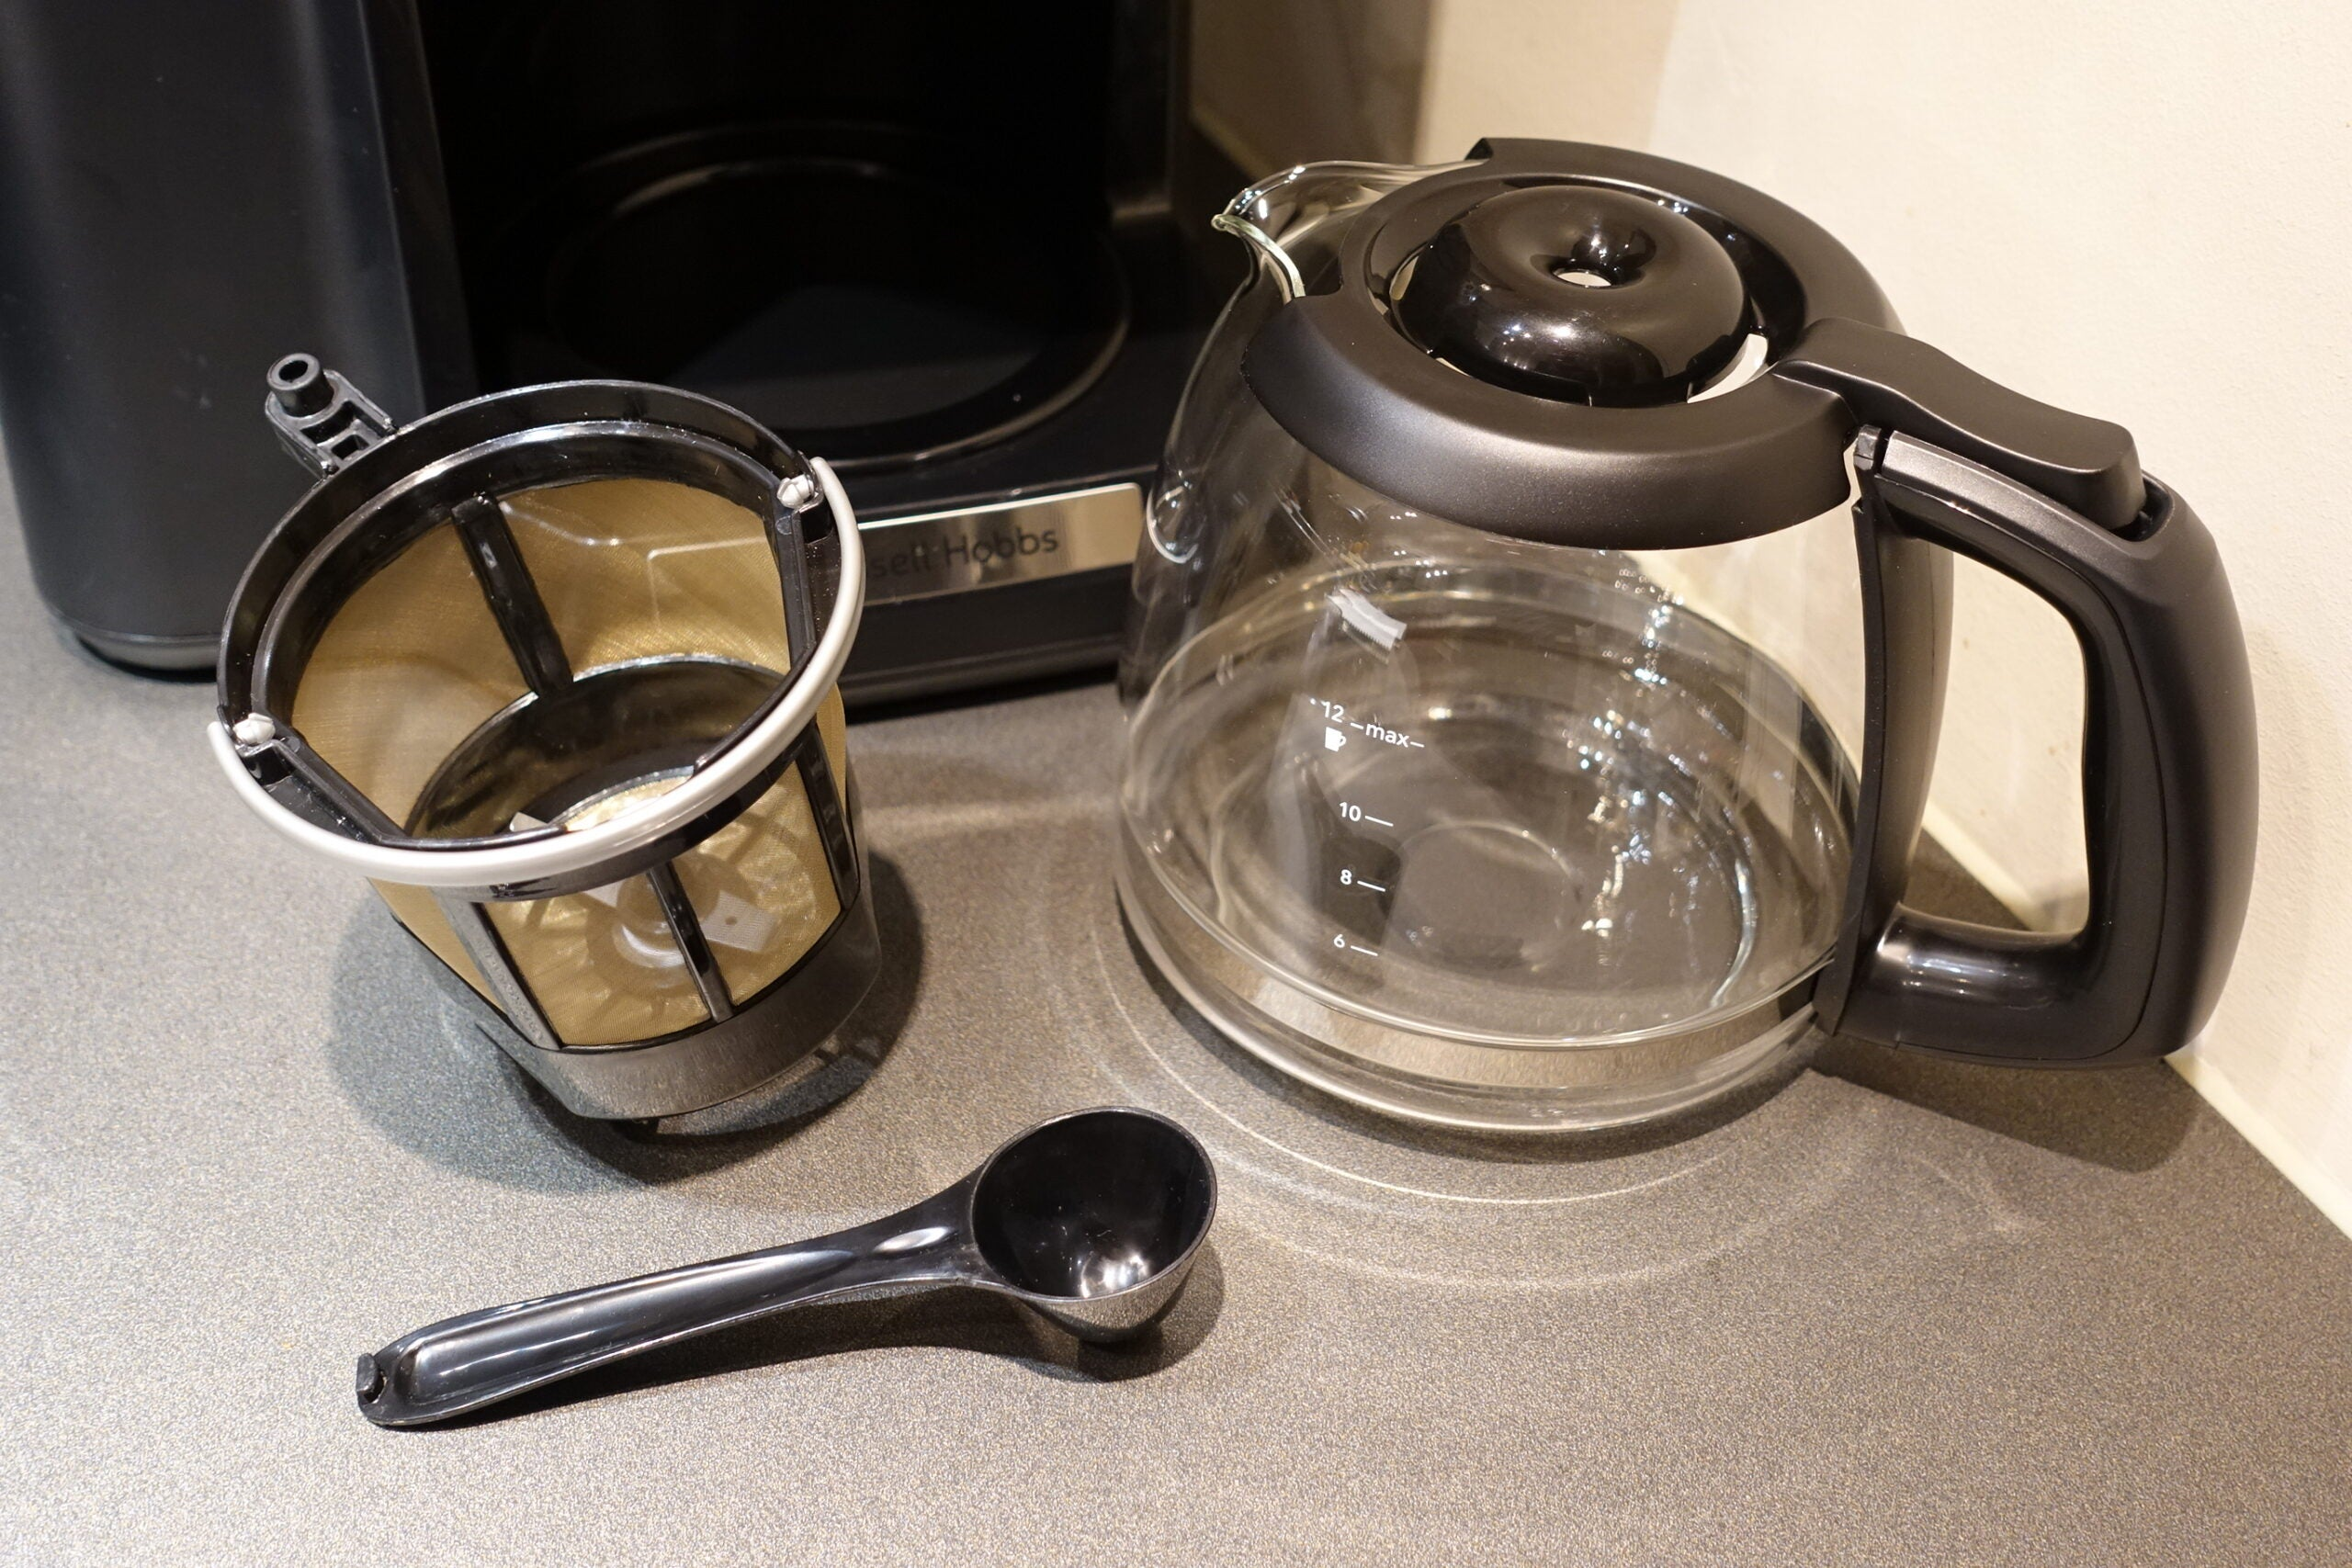 Russell Hobbs Grind and Brew parts